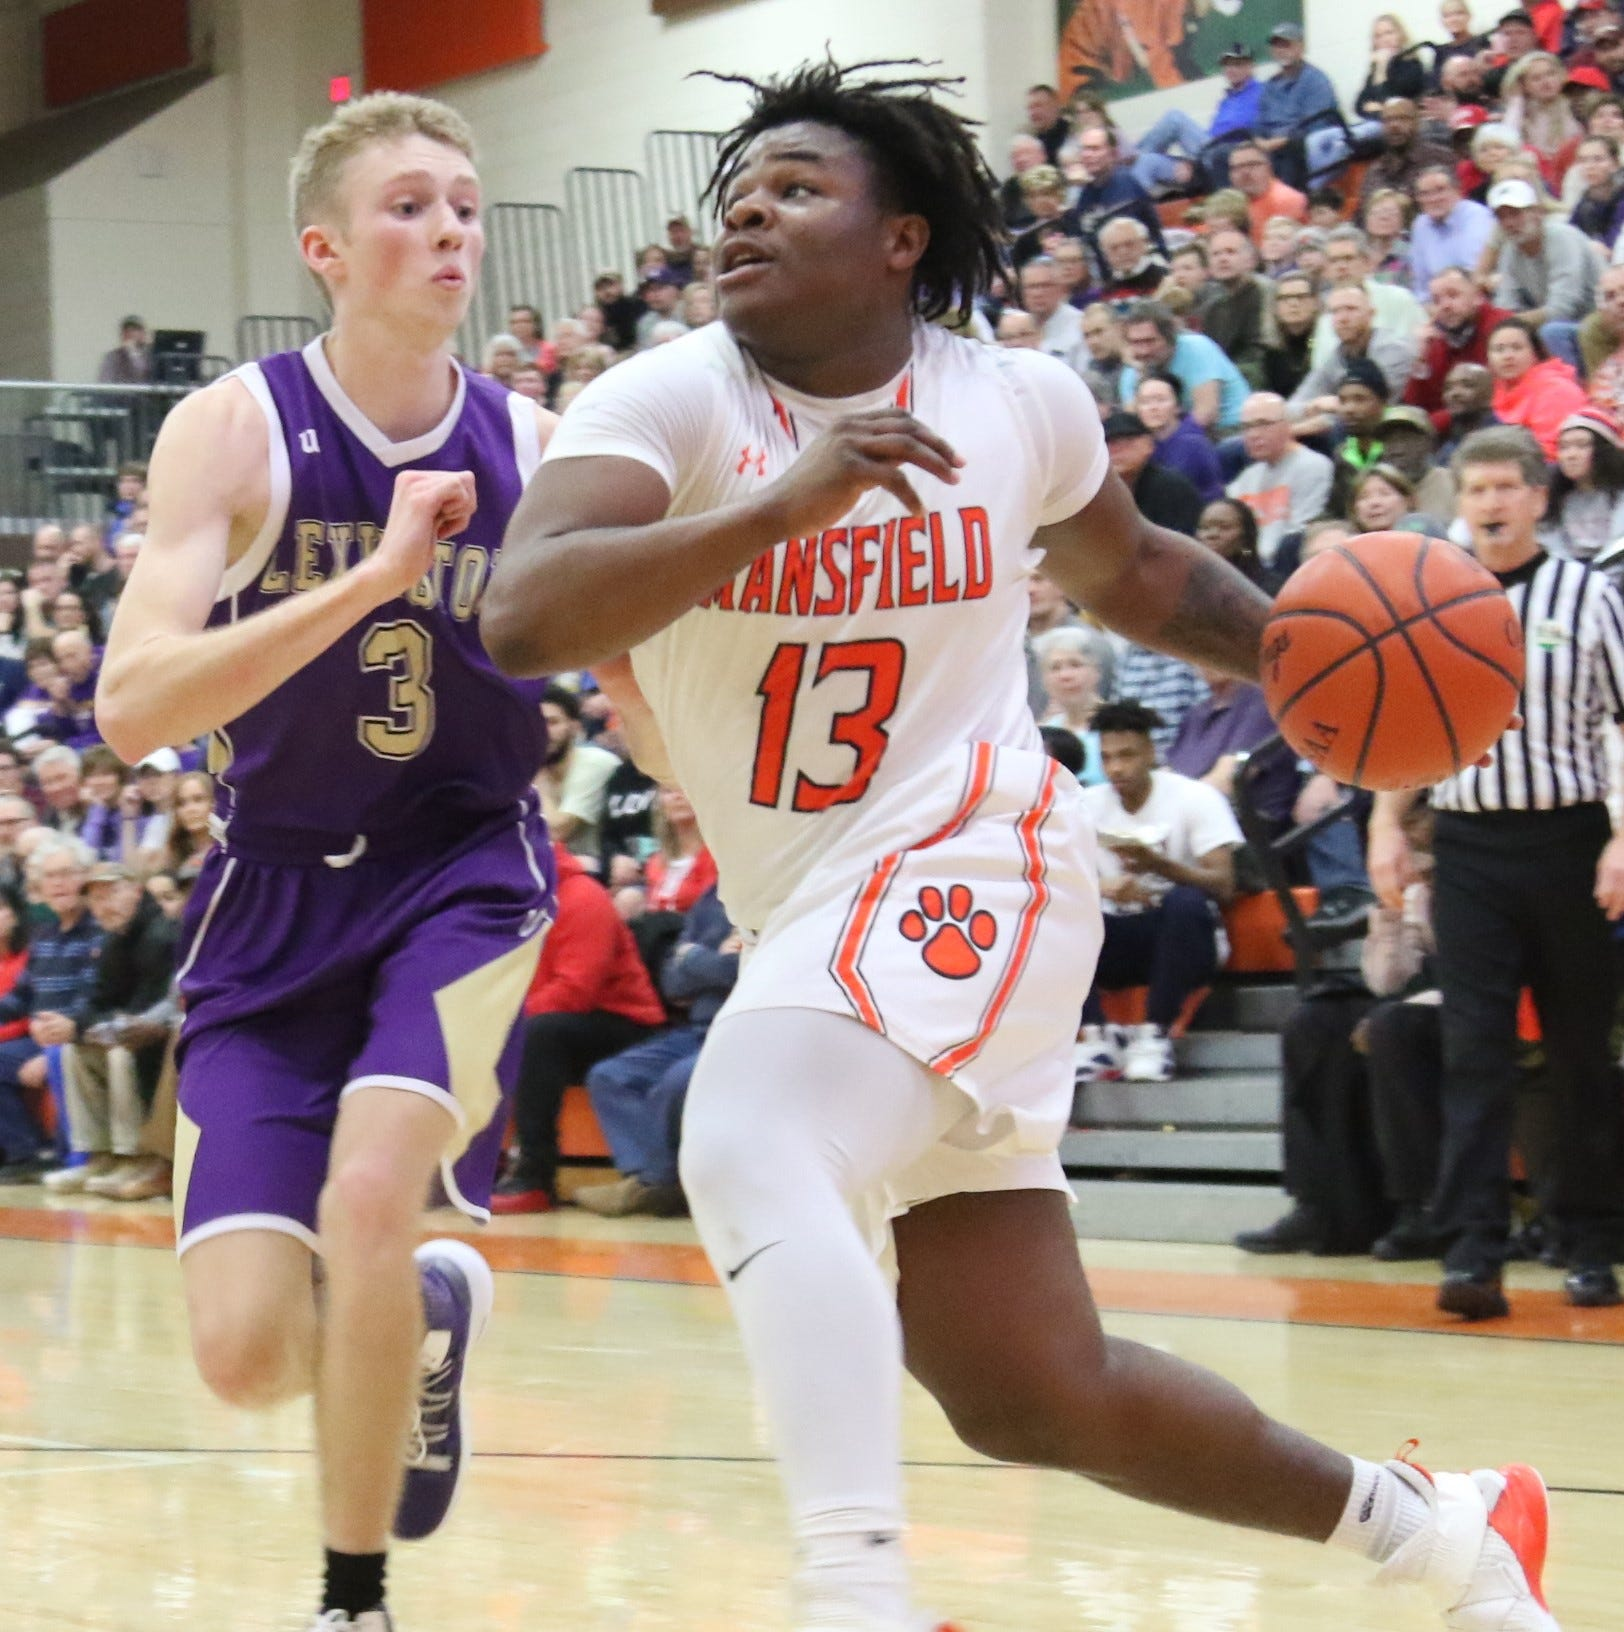 Best. Birthday. Ever.: Mansfield Senior Tygers defeat Lexington to force a tie atop OCC